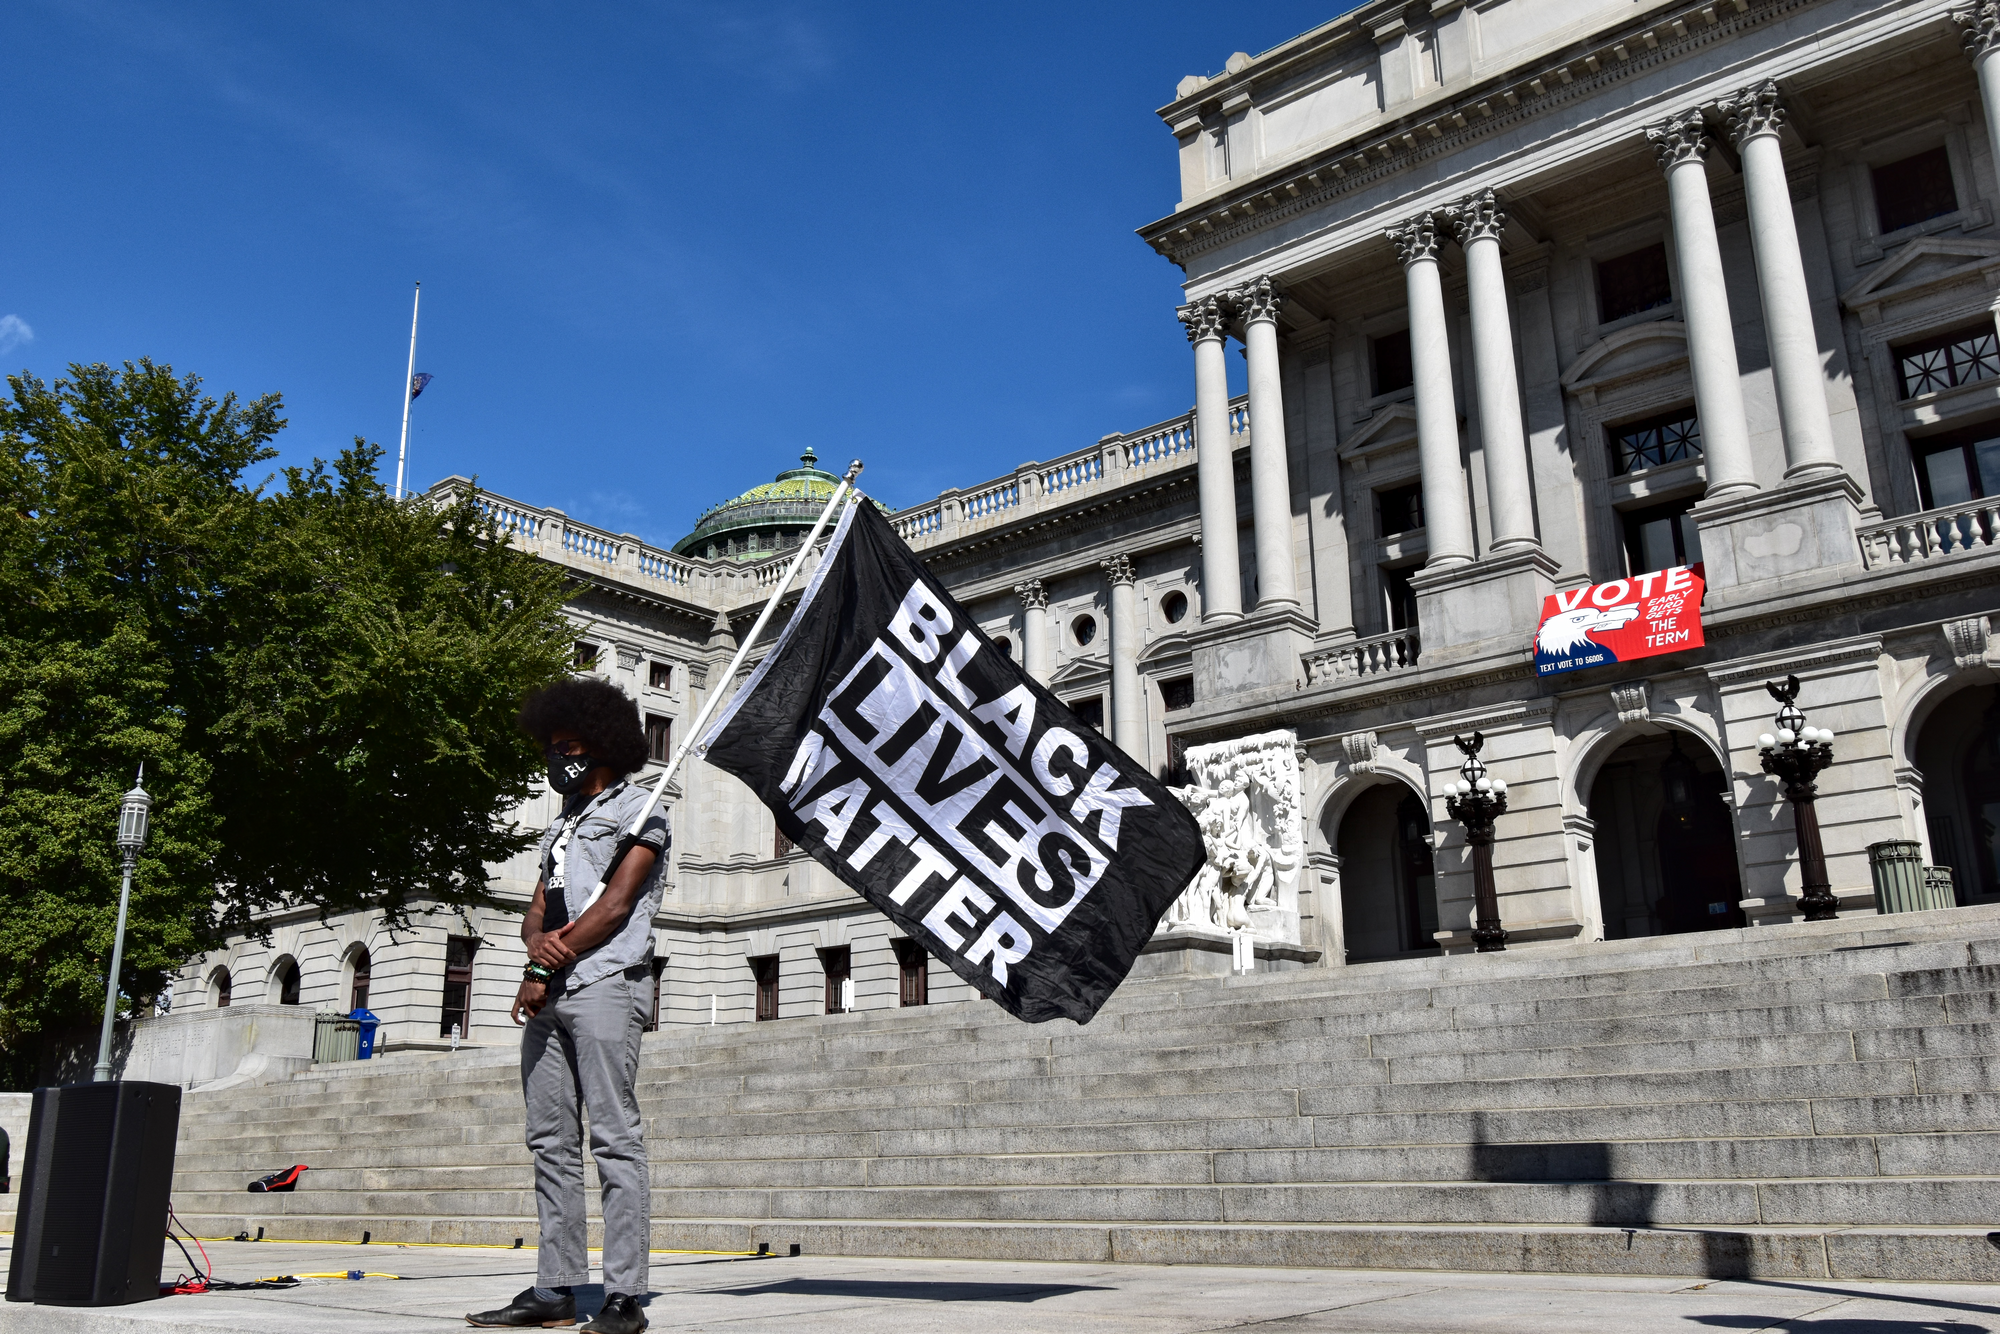 'We Can't Wait': Activists gather in Harrisburg for racial justice rally ahead of November election